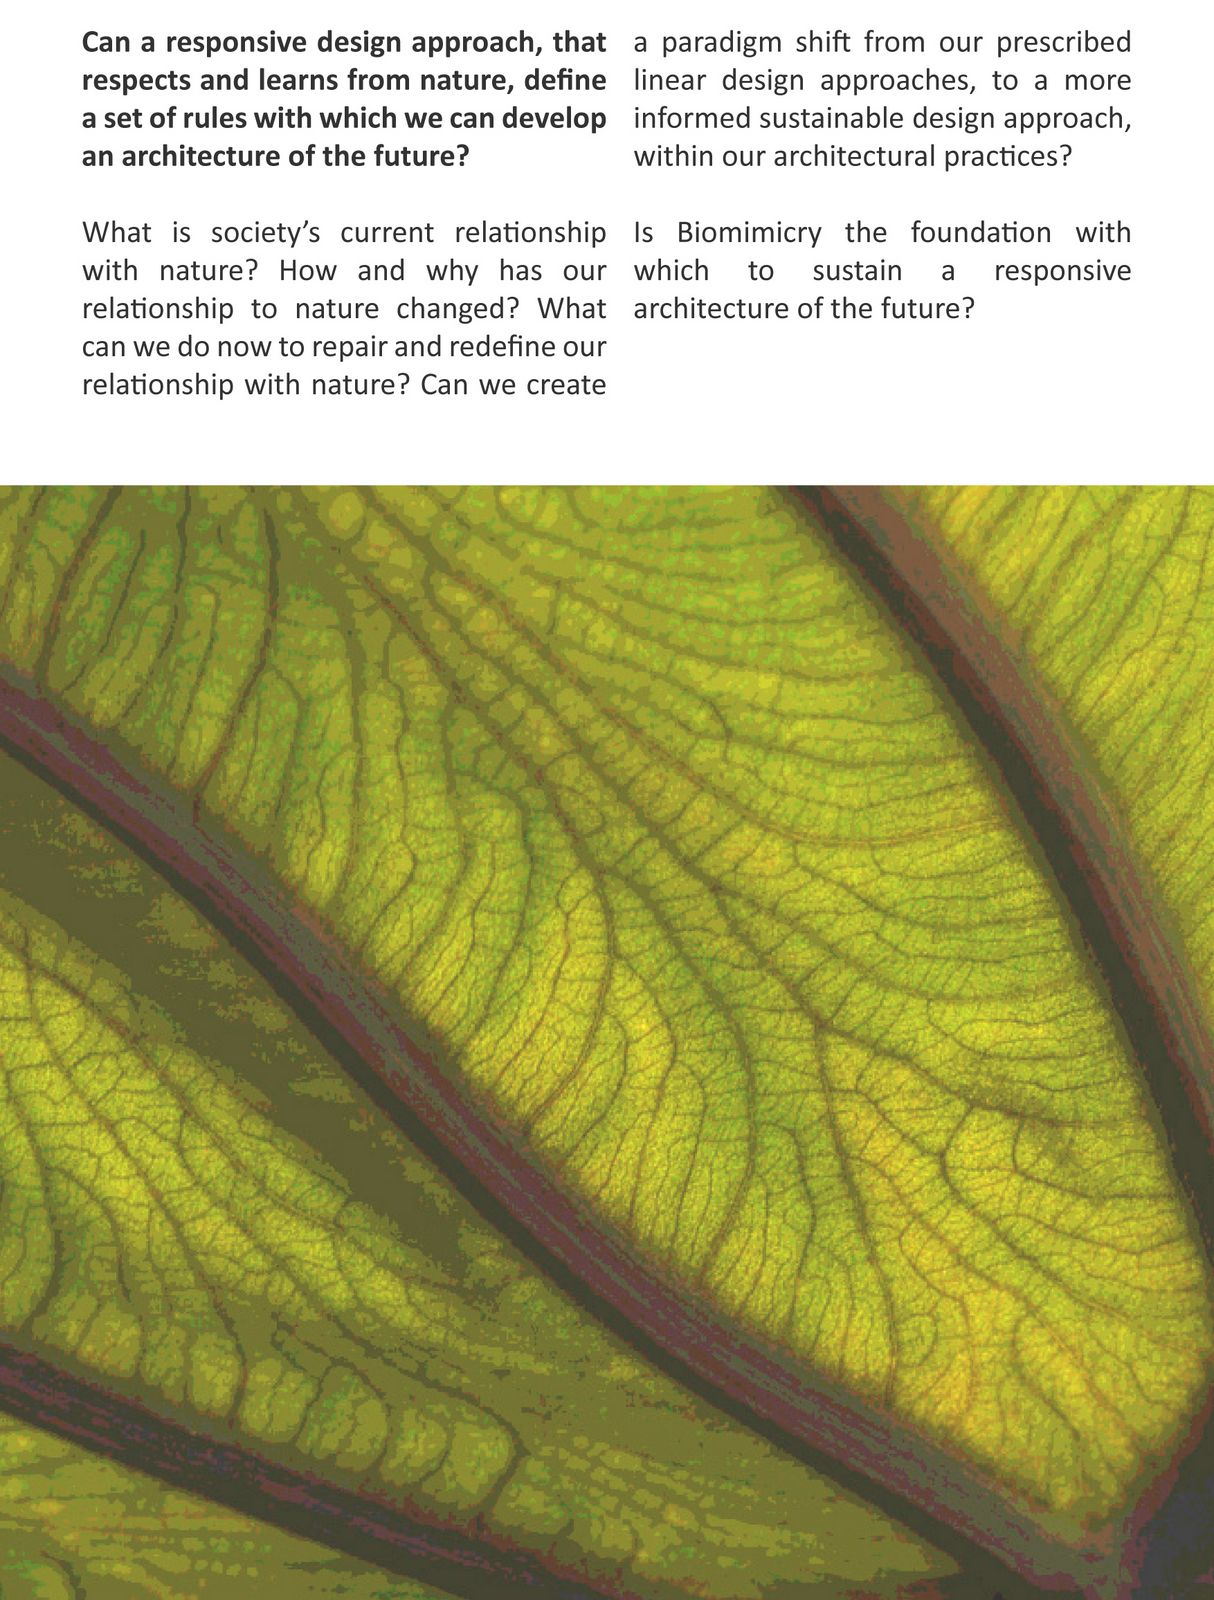 Thesis on biomimicry